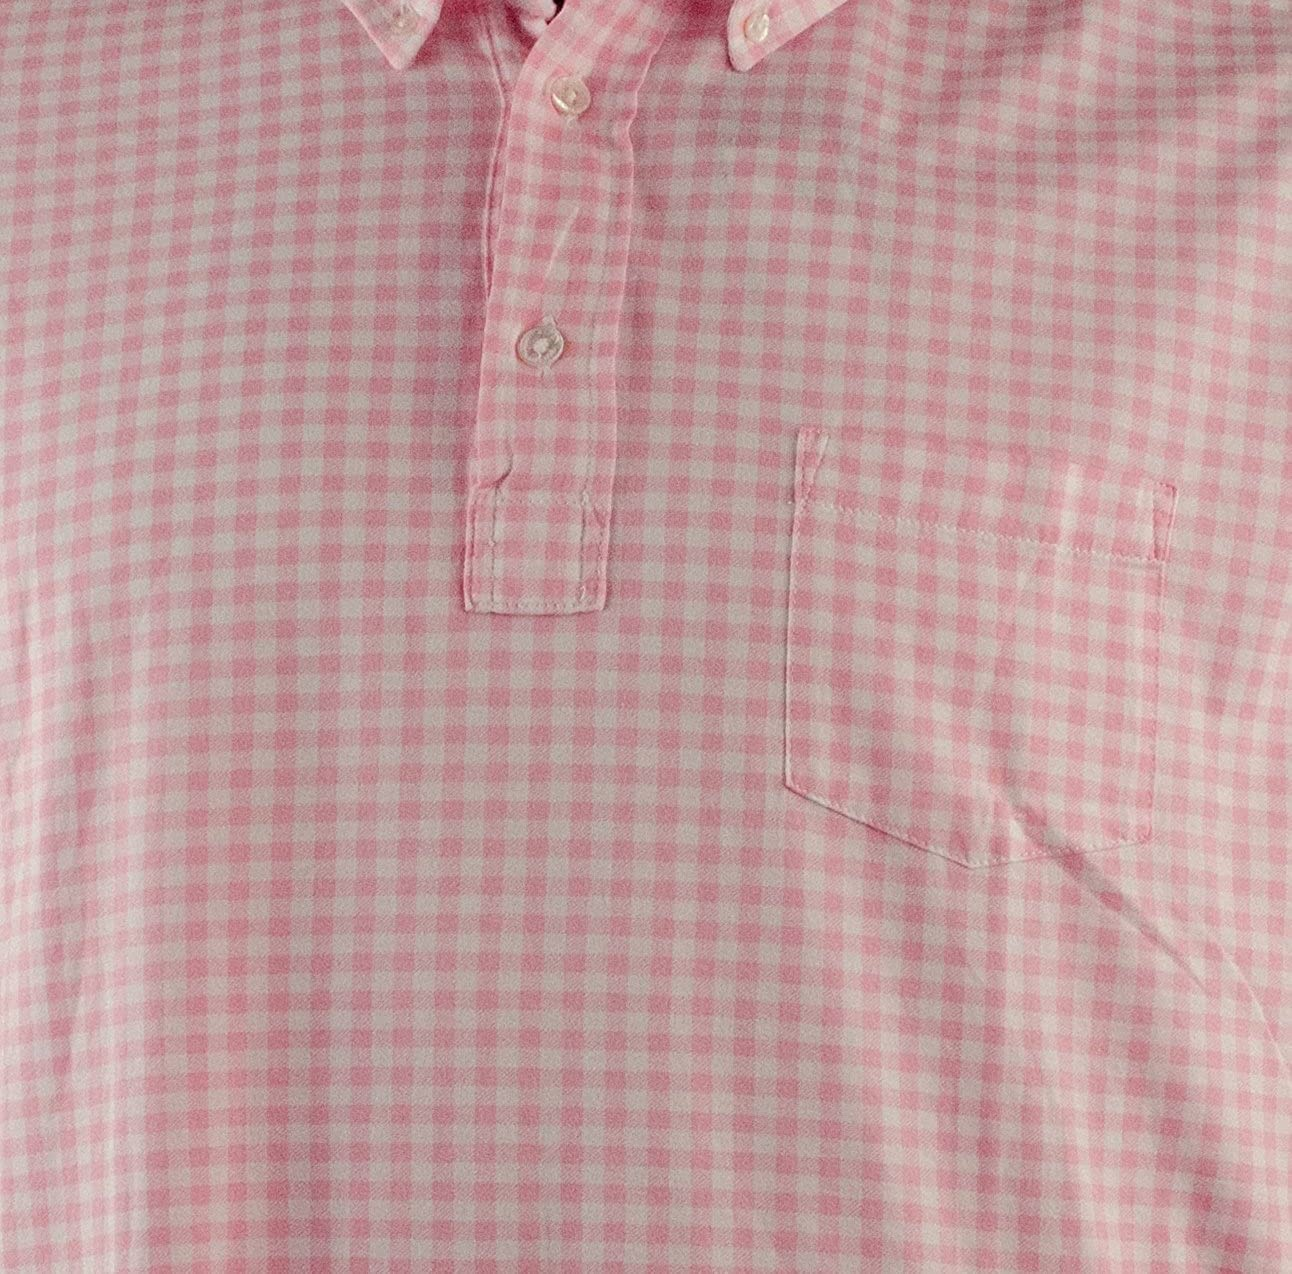 Polo Ralph Lauren Mens Luxury Gingham Jersey Polo Shirt